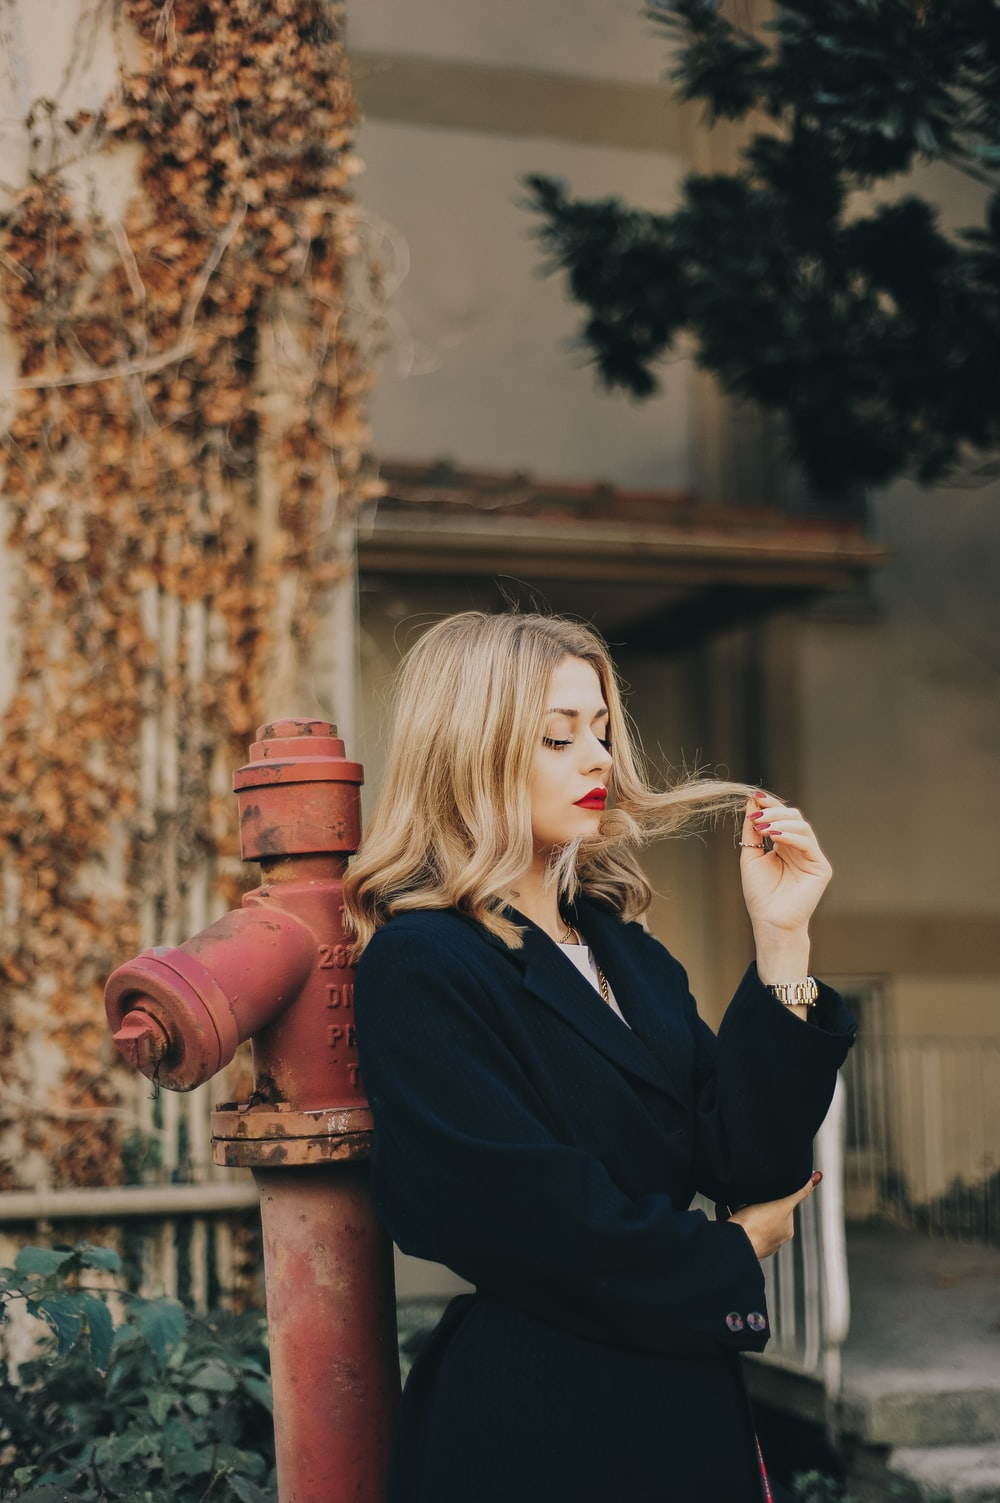 woman leaning on hydrant